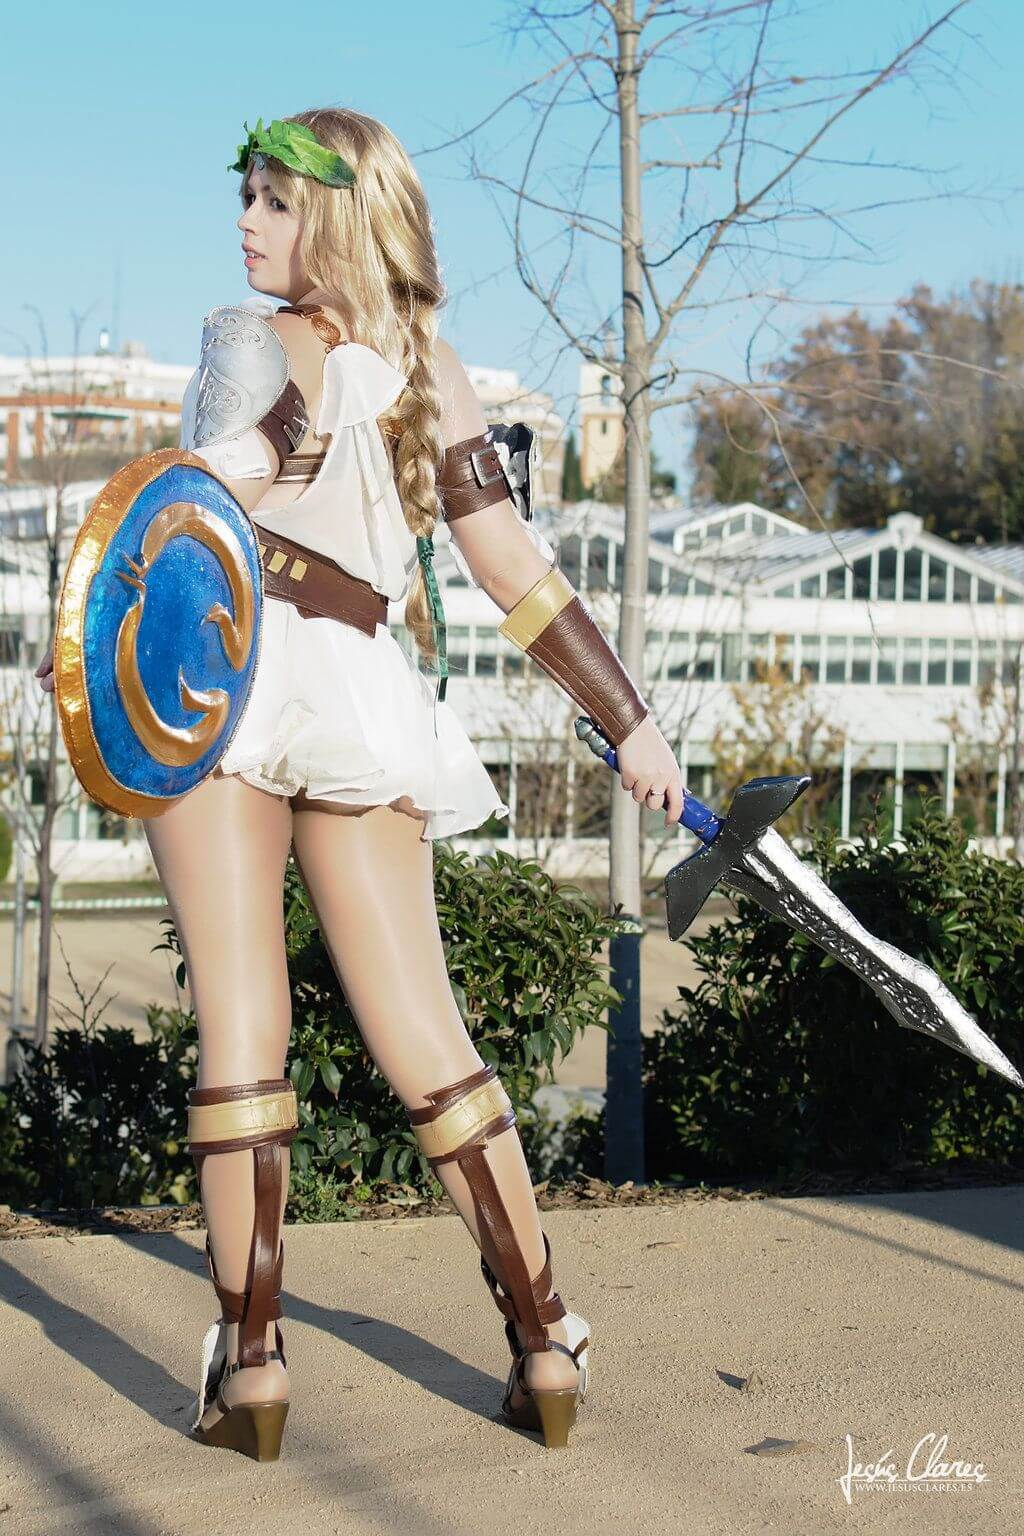 Sophitia sexy thighs